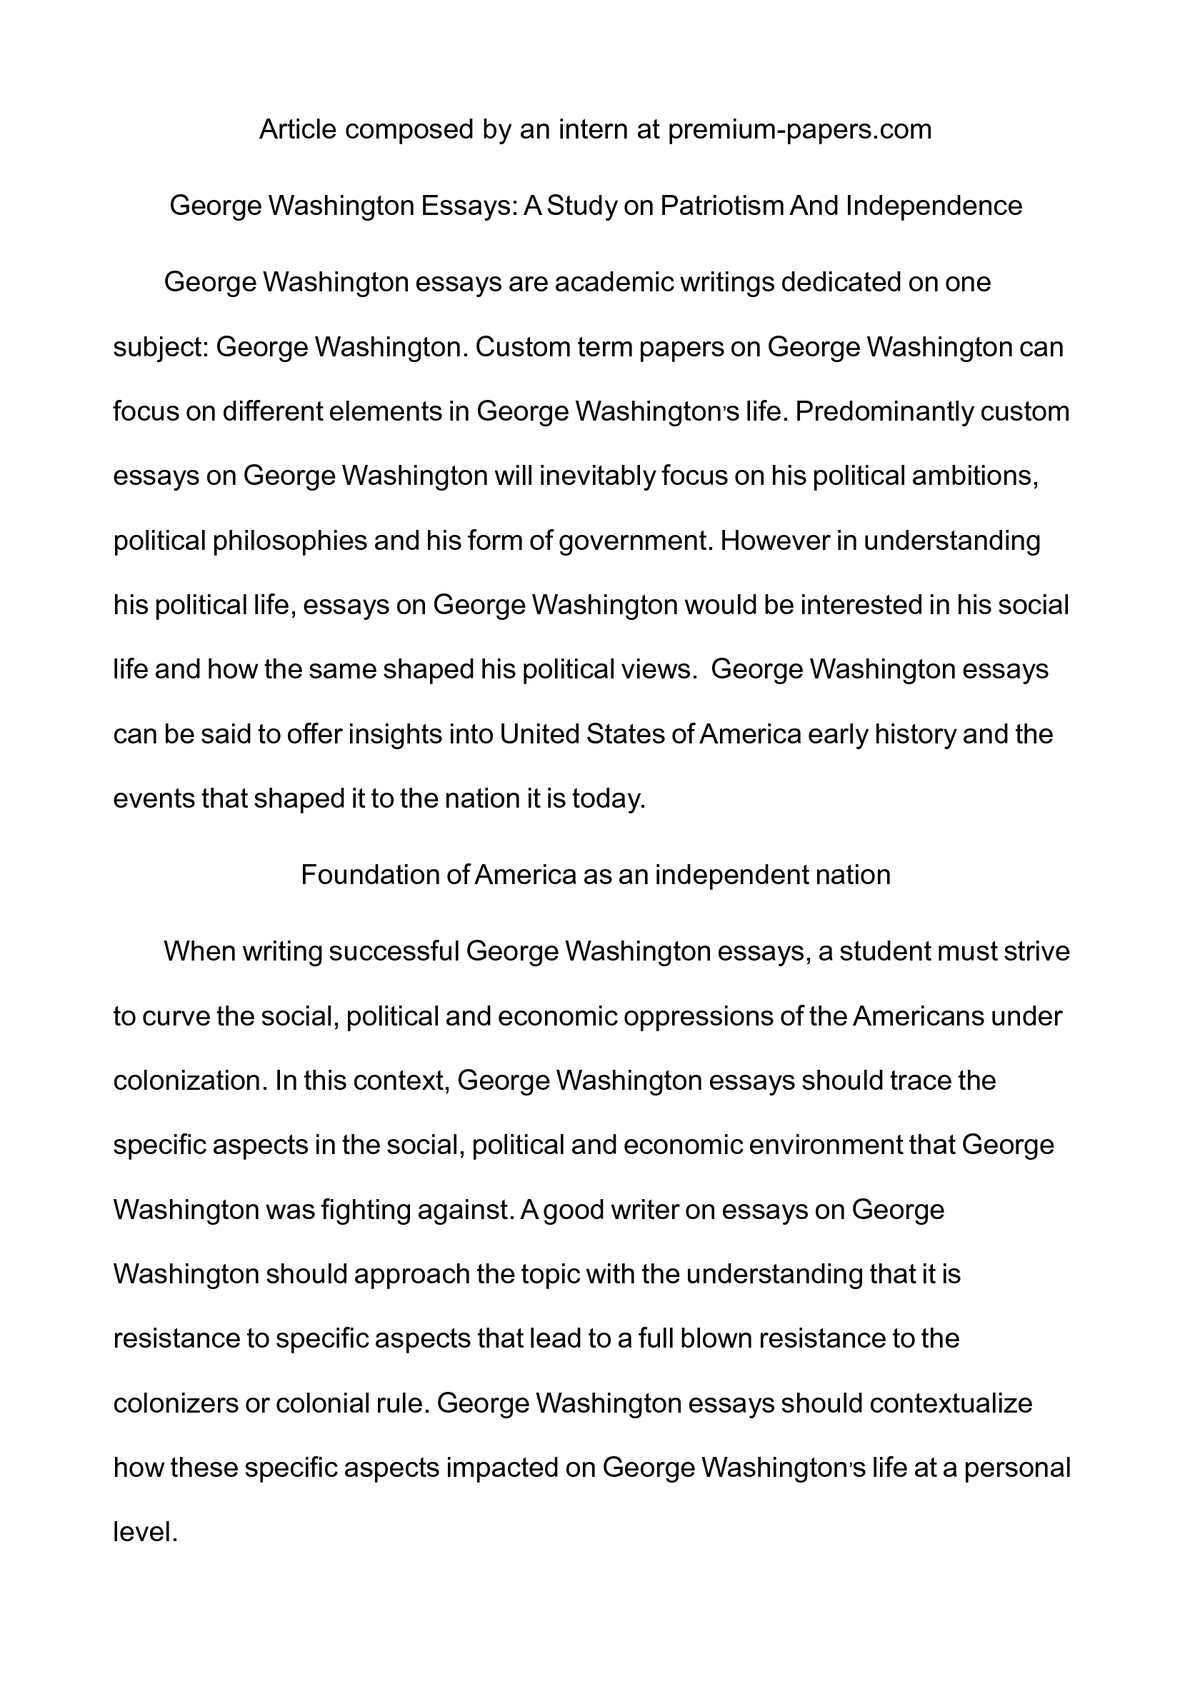 Calamo  George Washington Essays A Study On Patriotism And  Calamo  George Washington Essays A Study On Patriotism And Independence Best Paraphrasing Online also Writing Companies  5 Paragraph Essay Topics For High School